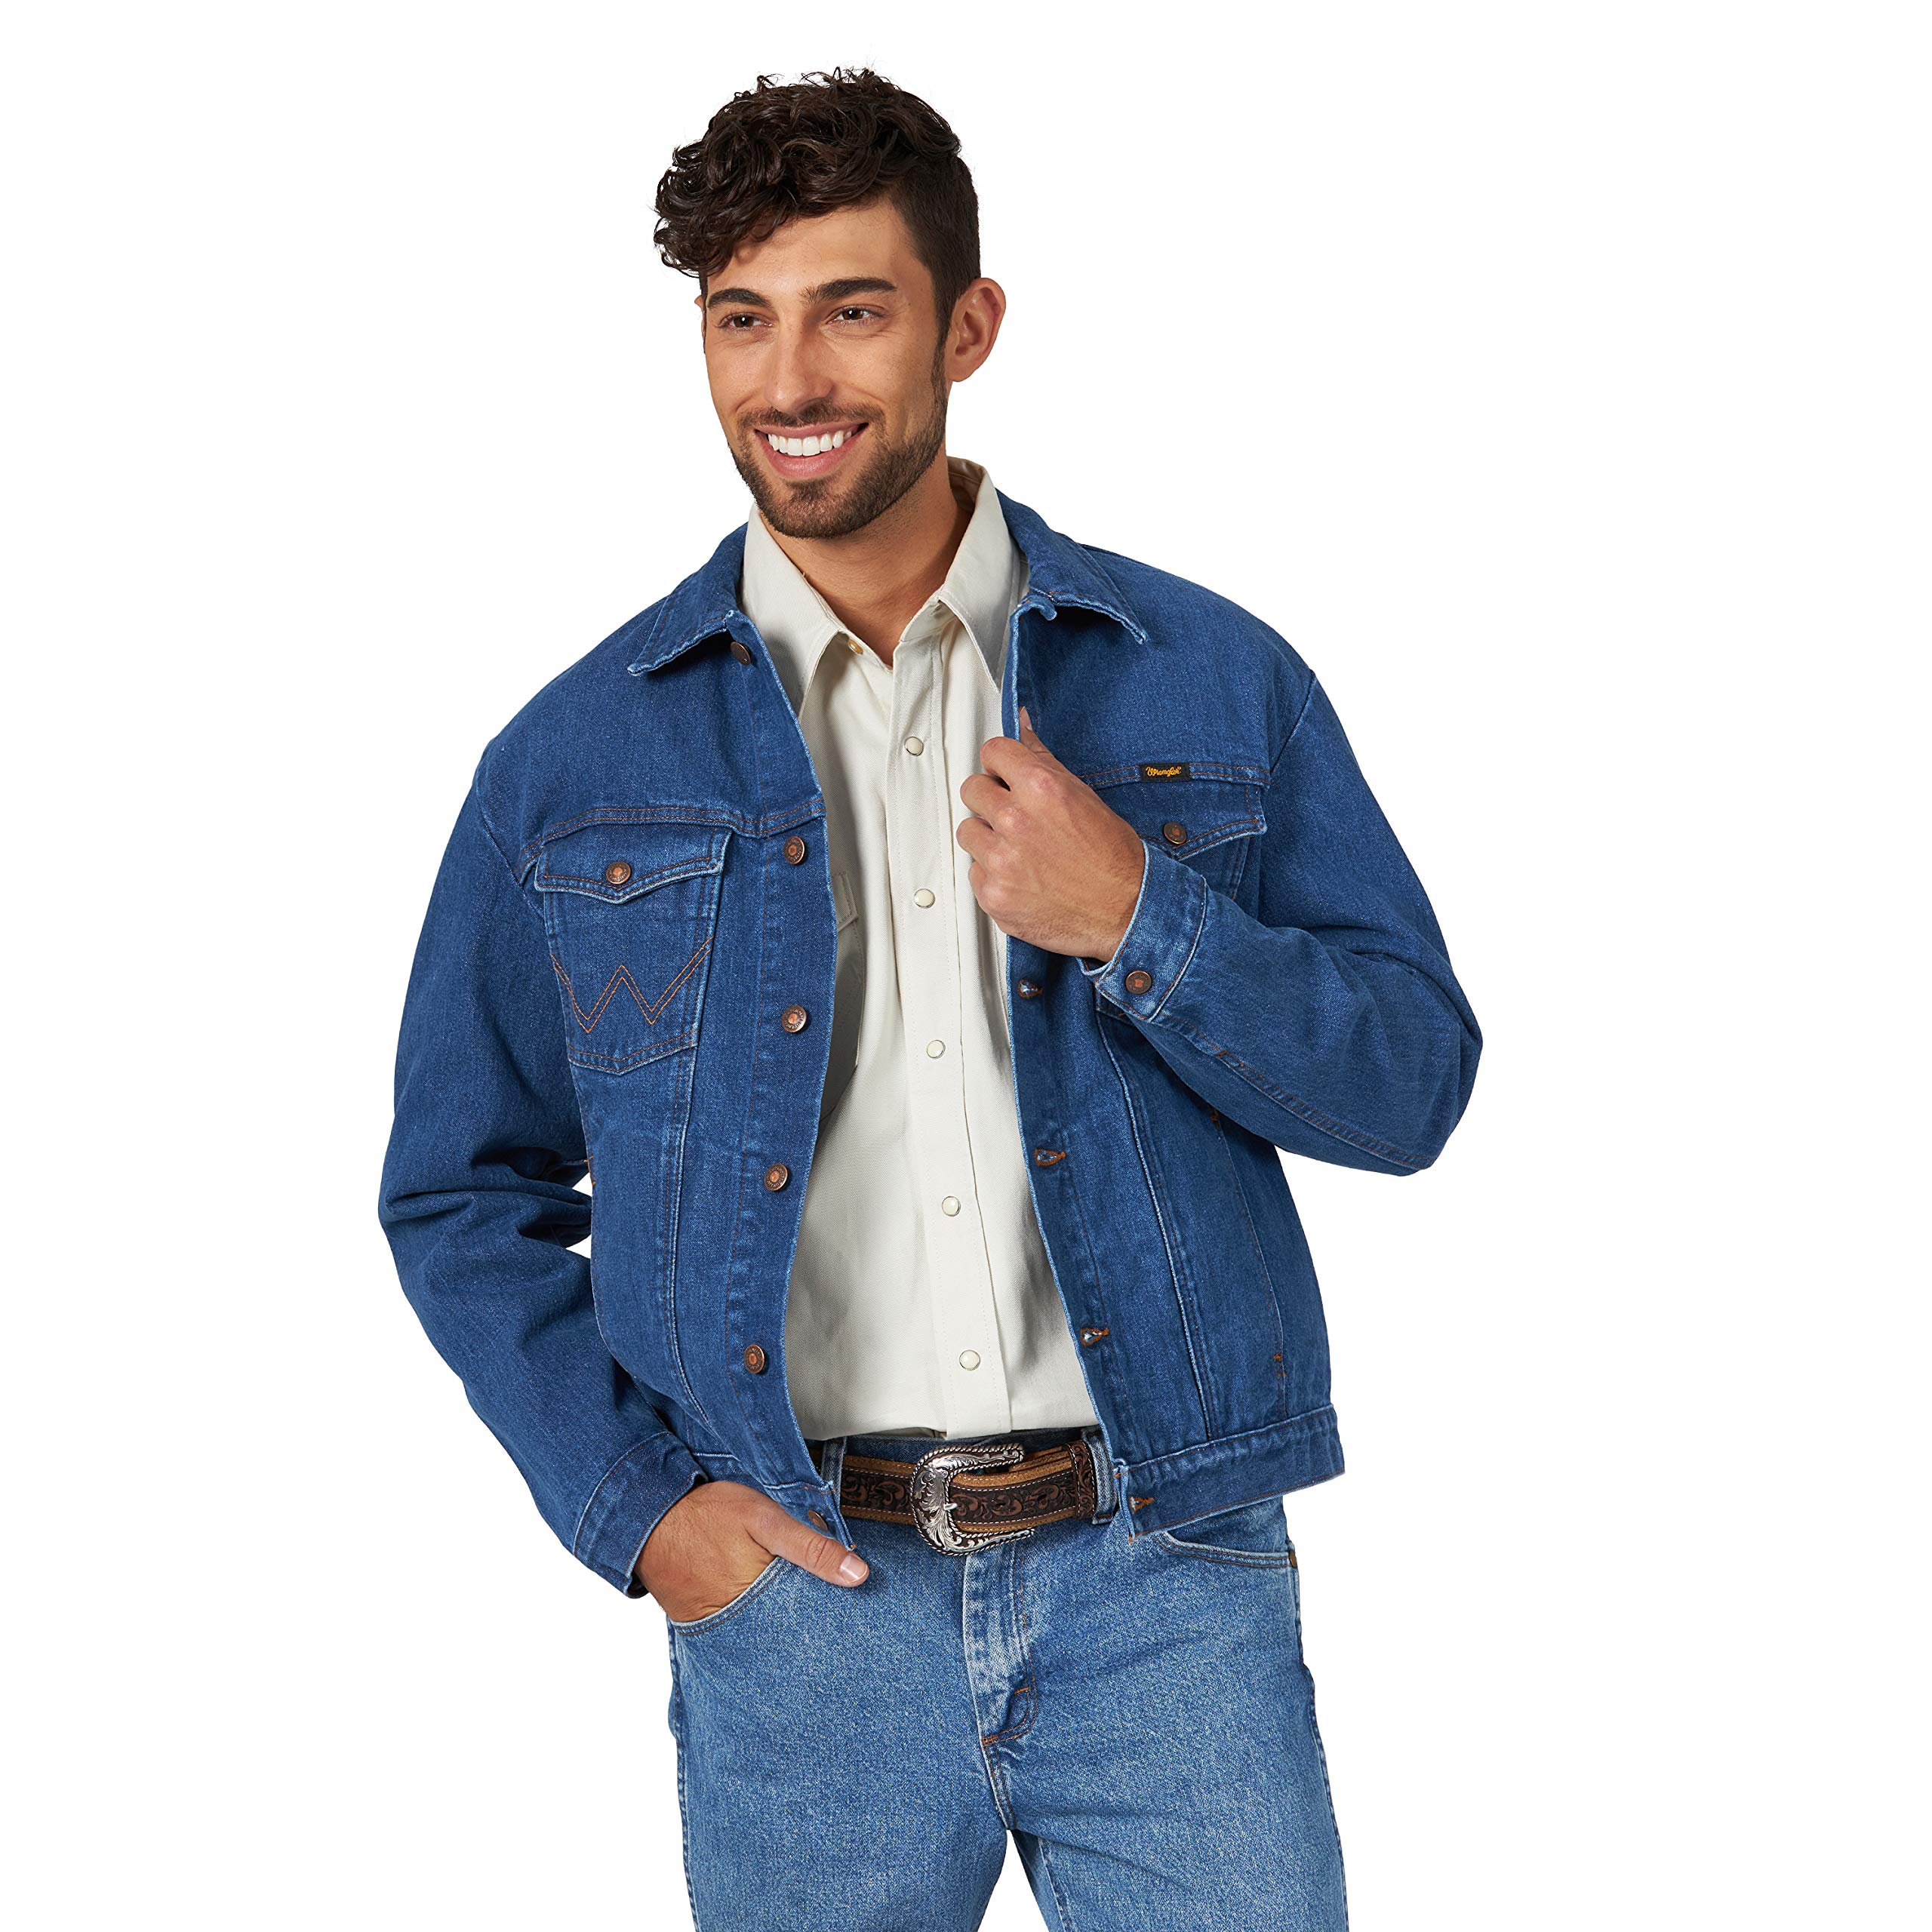 Wrangler Men's Western Style Unlined Denim Jacket, Midstone, Large Tall by Wrangler